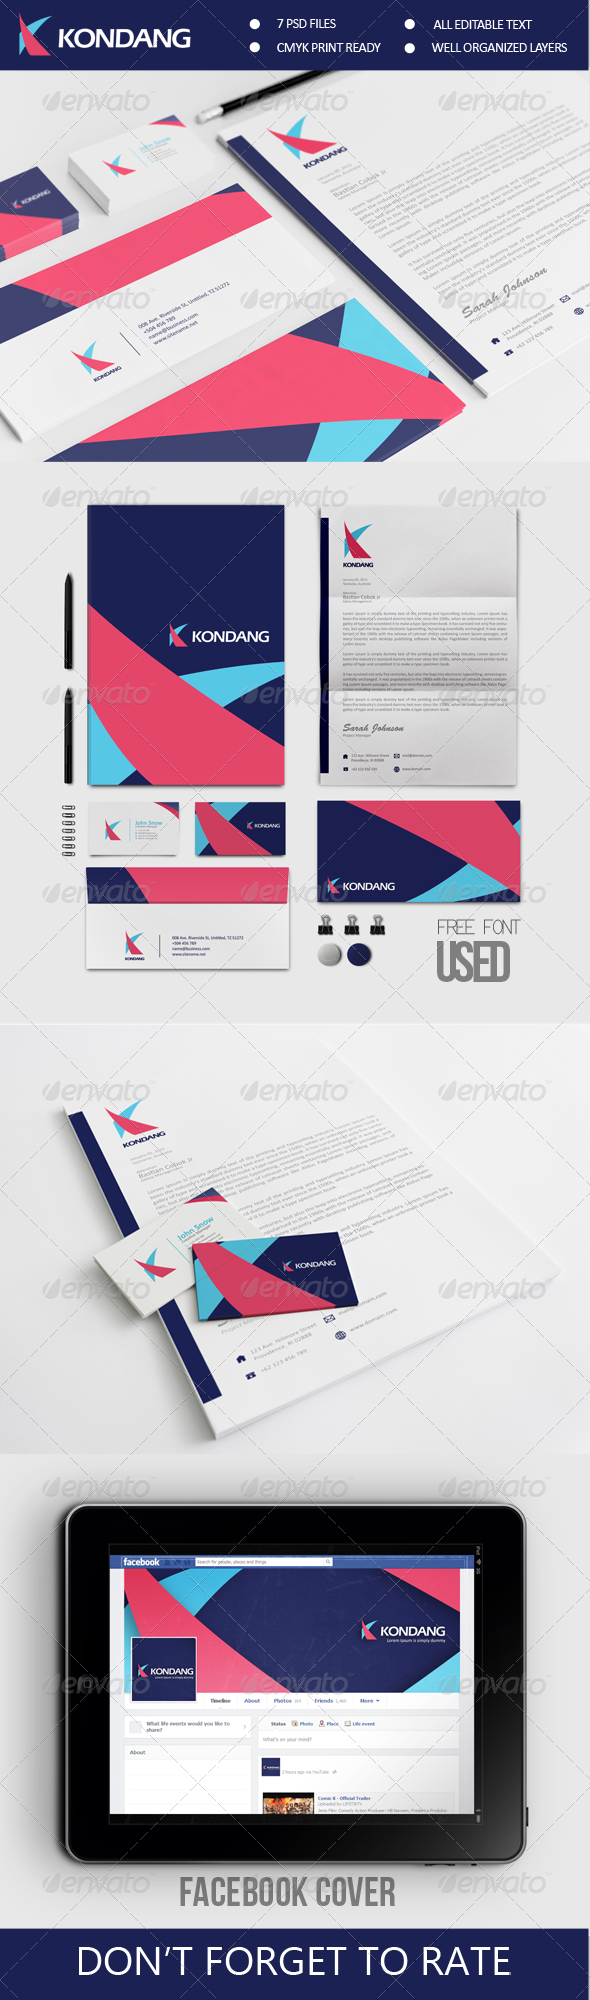 Kondang Corporate Identity - Stationery Print Templates